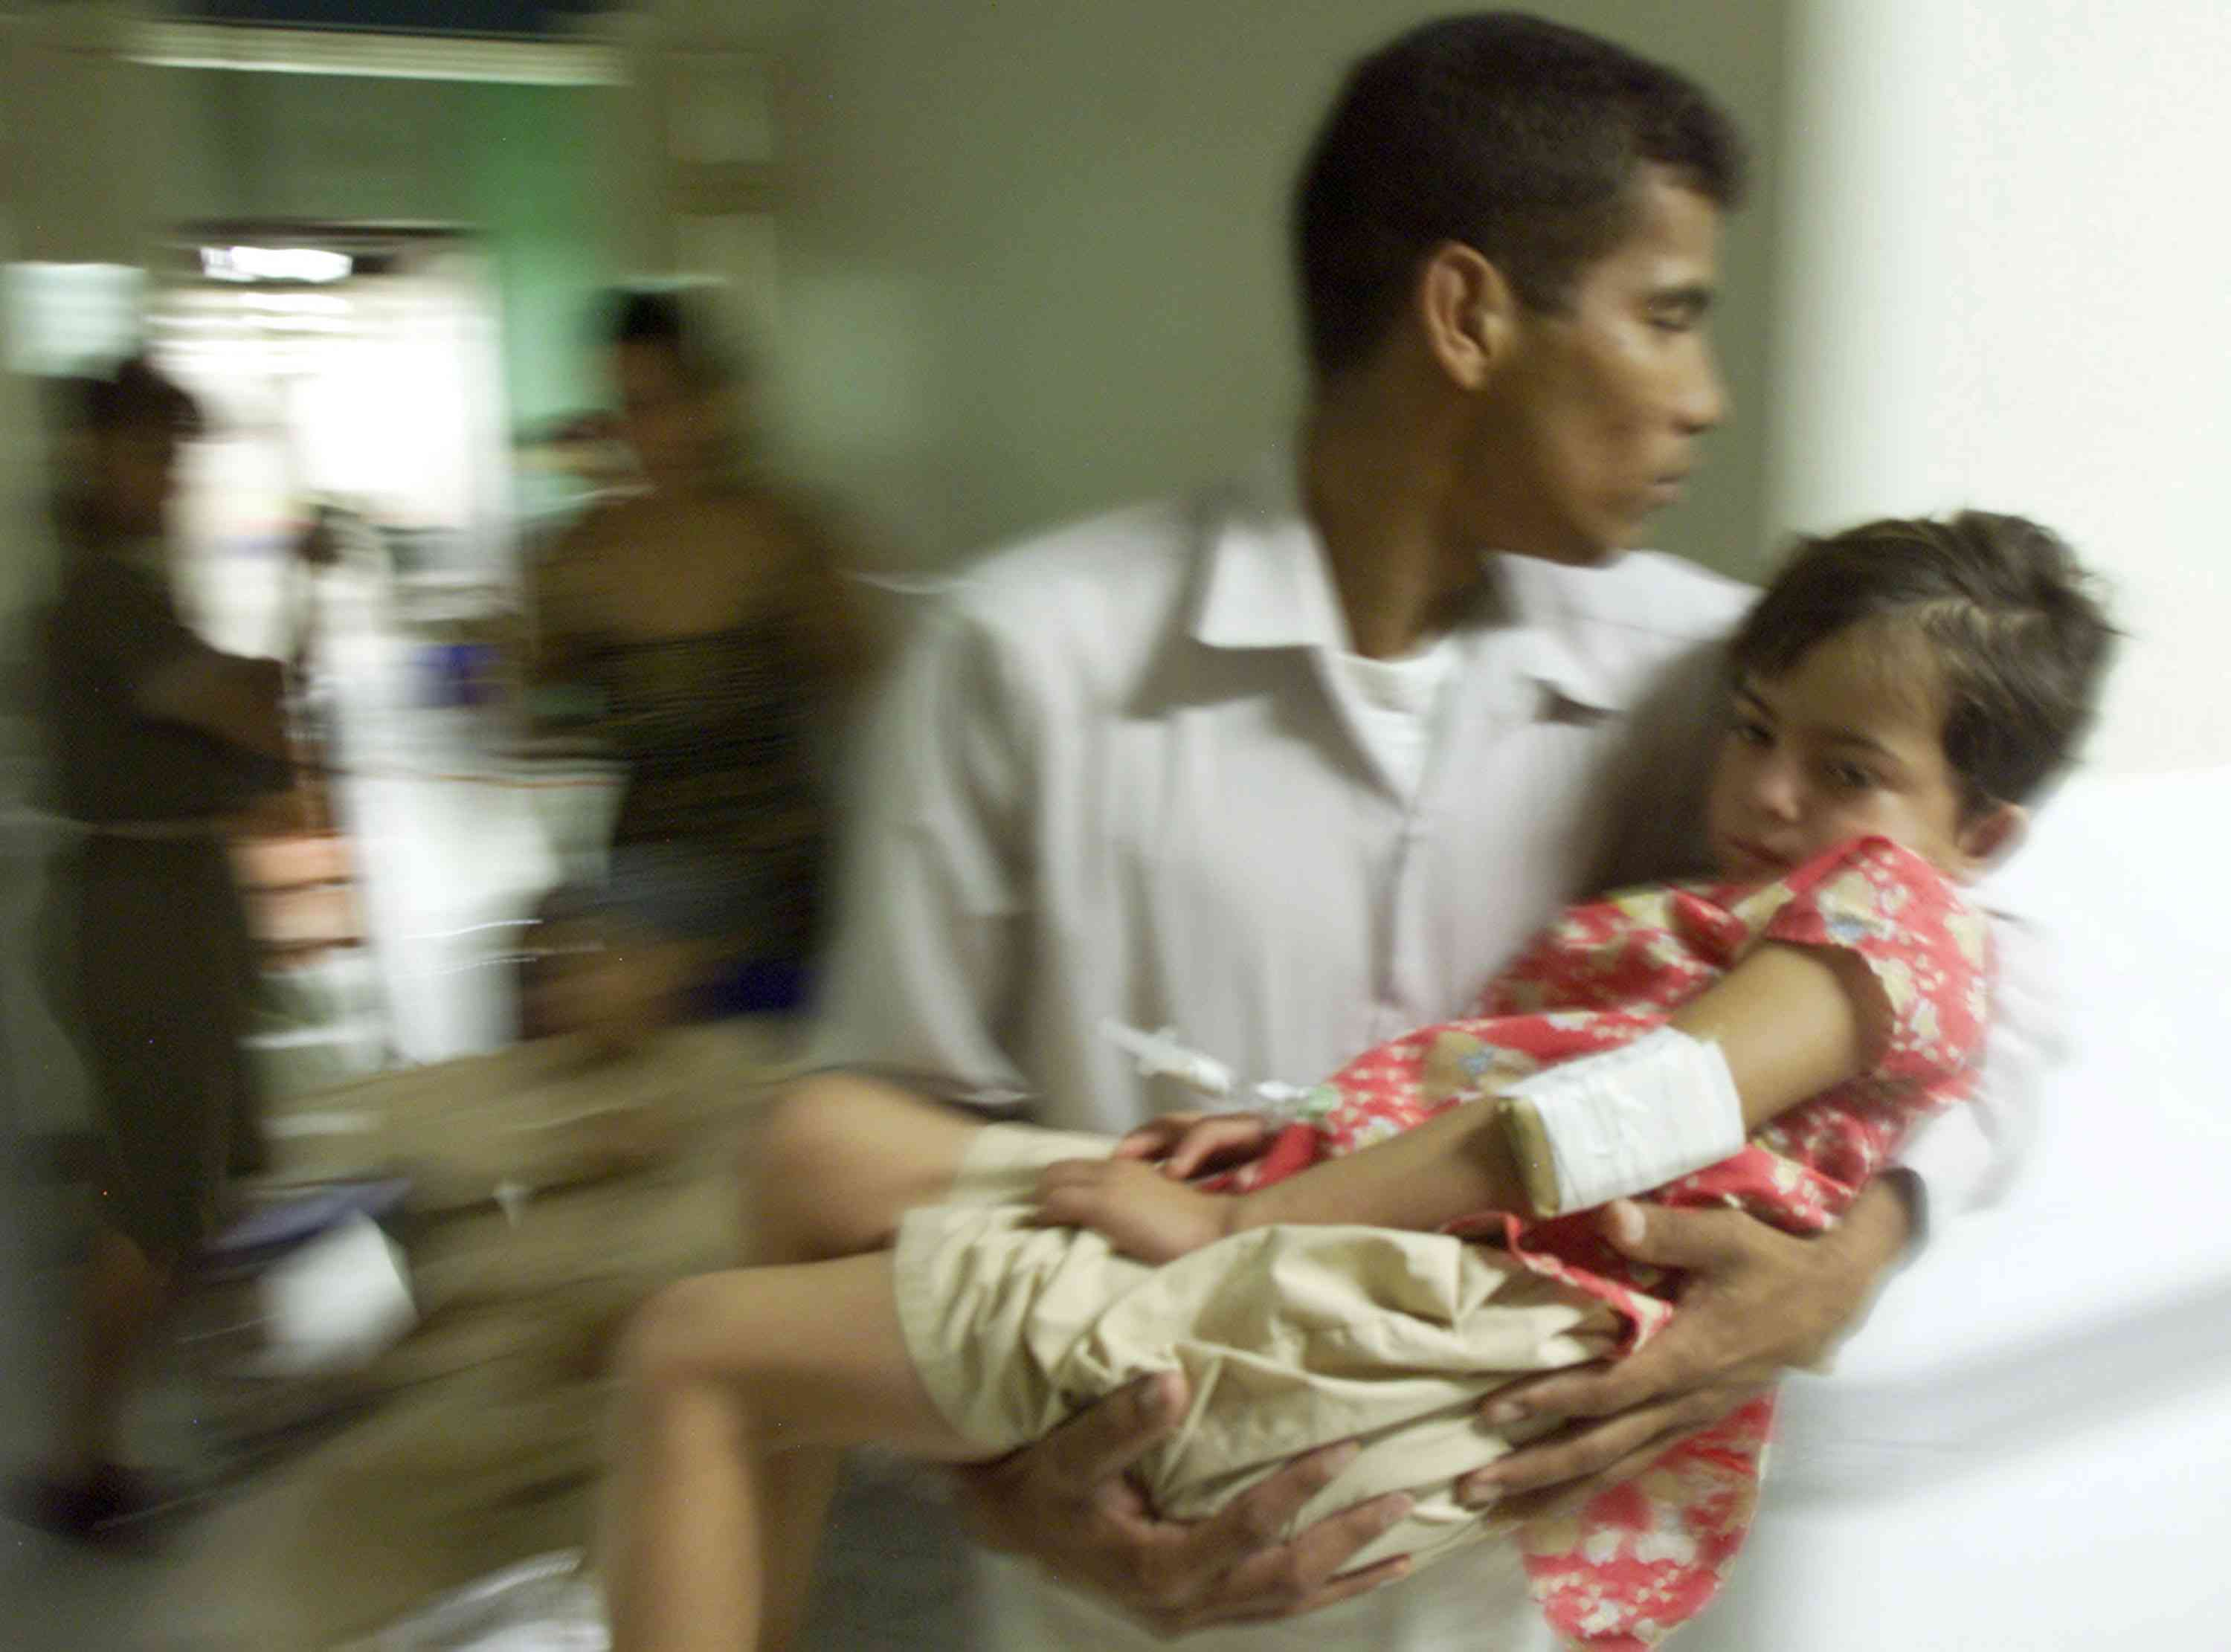 A child with Dengue fever during a 2002 outbreak in Honduras being carried by an adult man